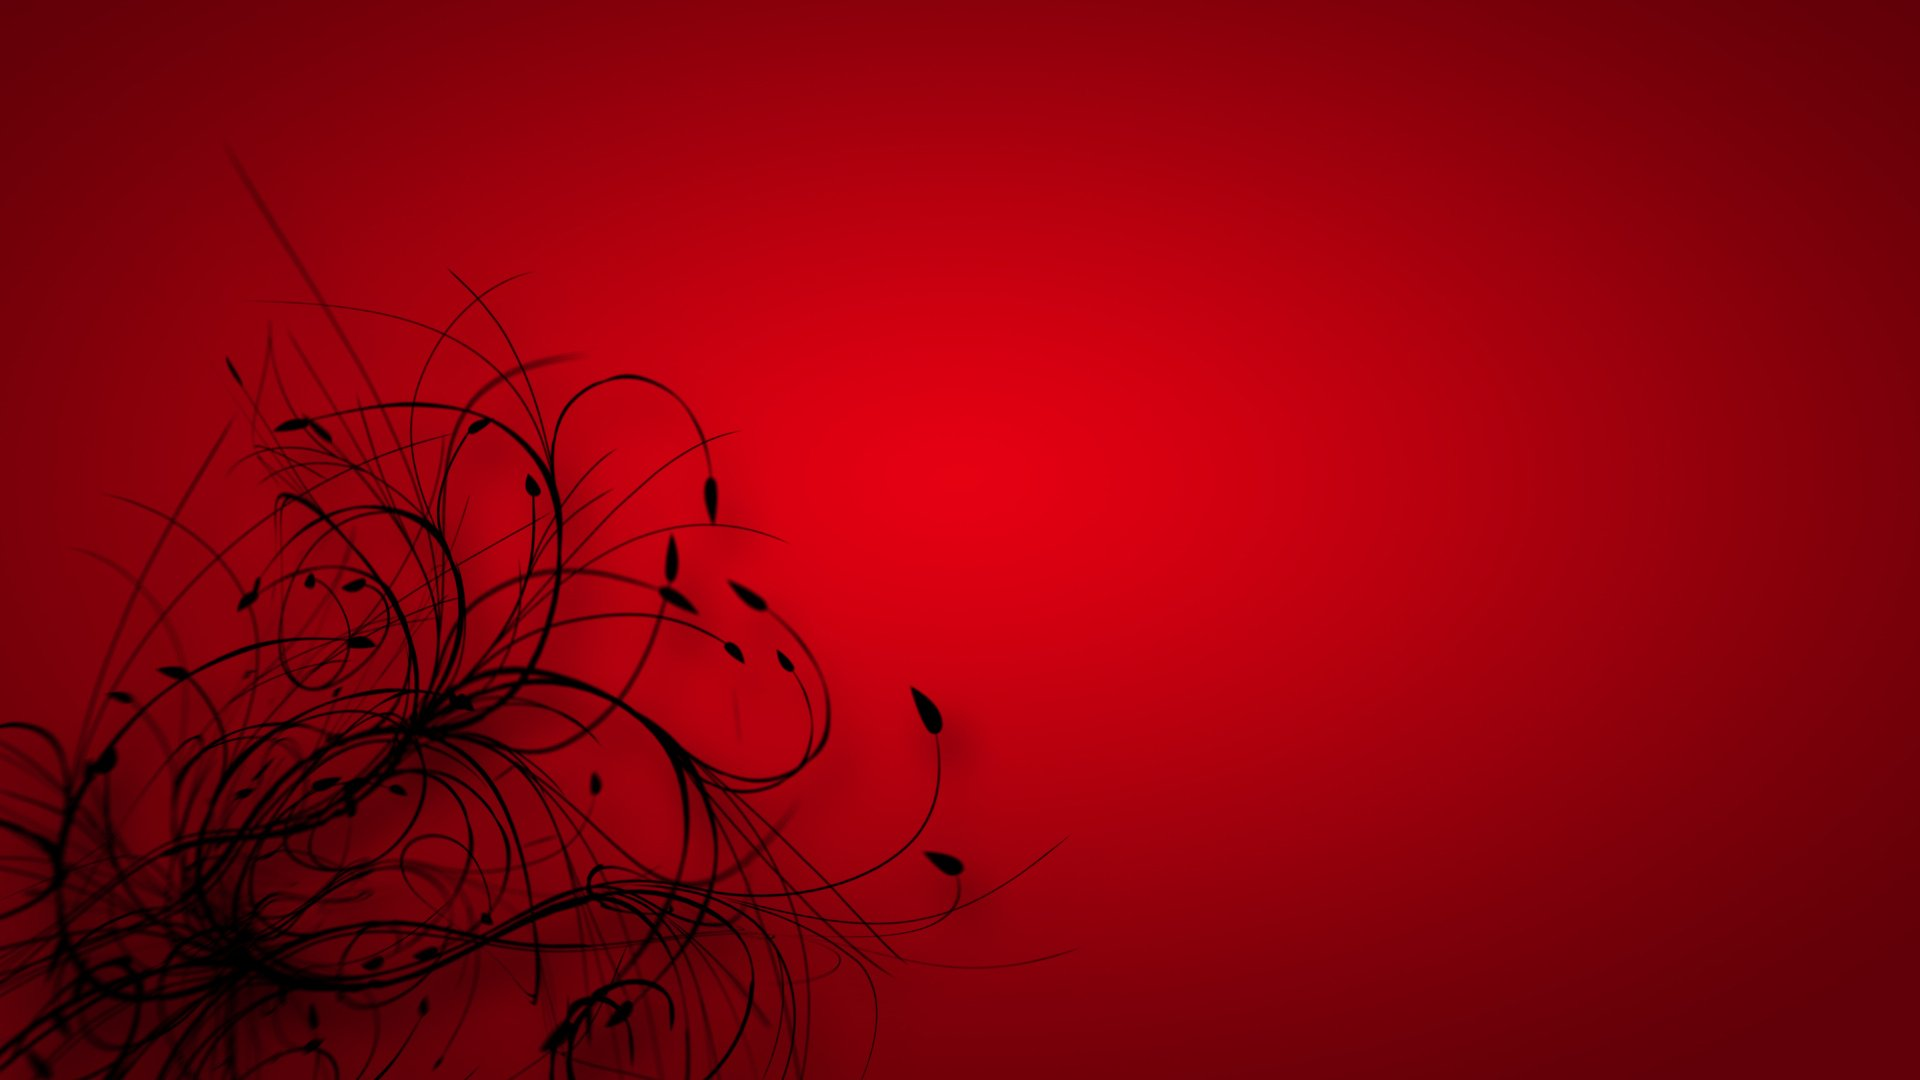 40 Crisp Red Wallpapers For Desktop Laptop and Tablet Devices 1920x1080